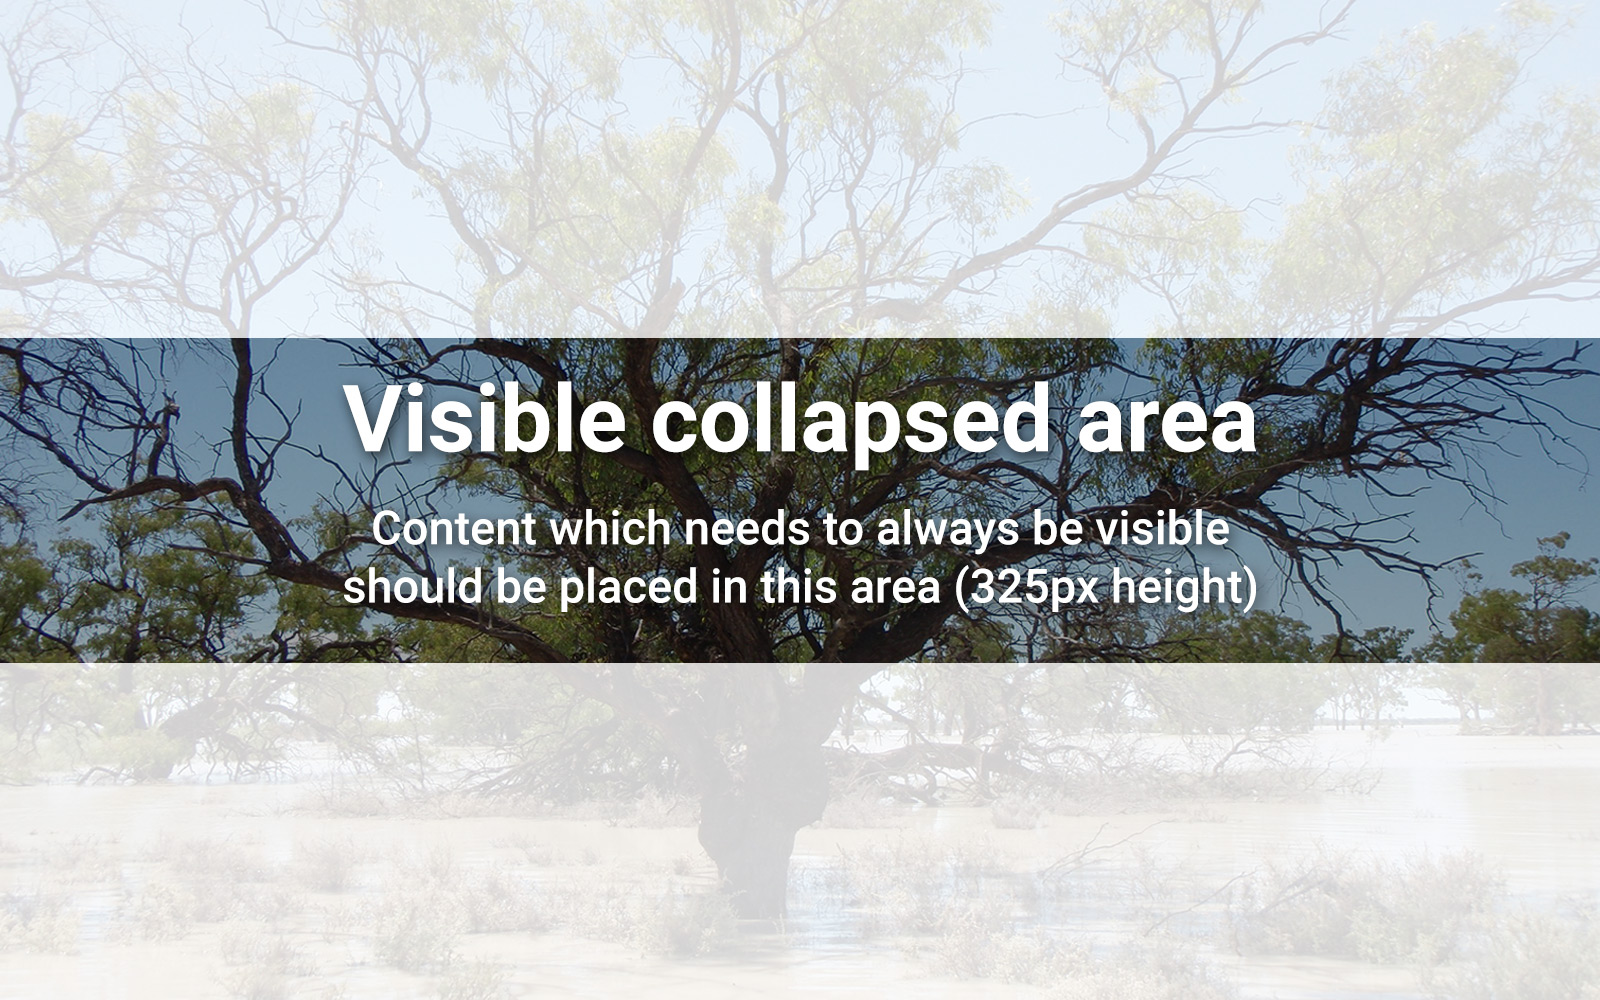 Visible collapsed area